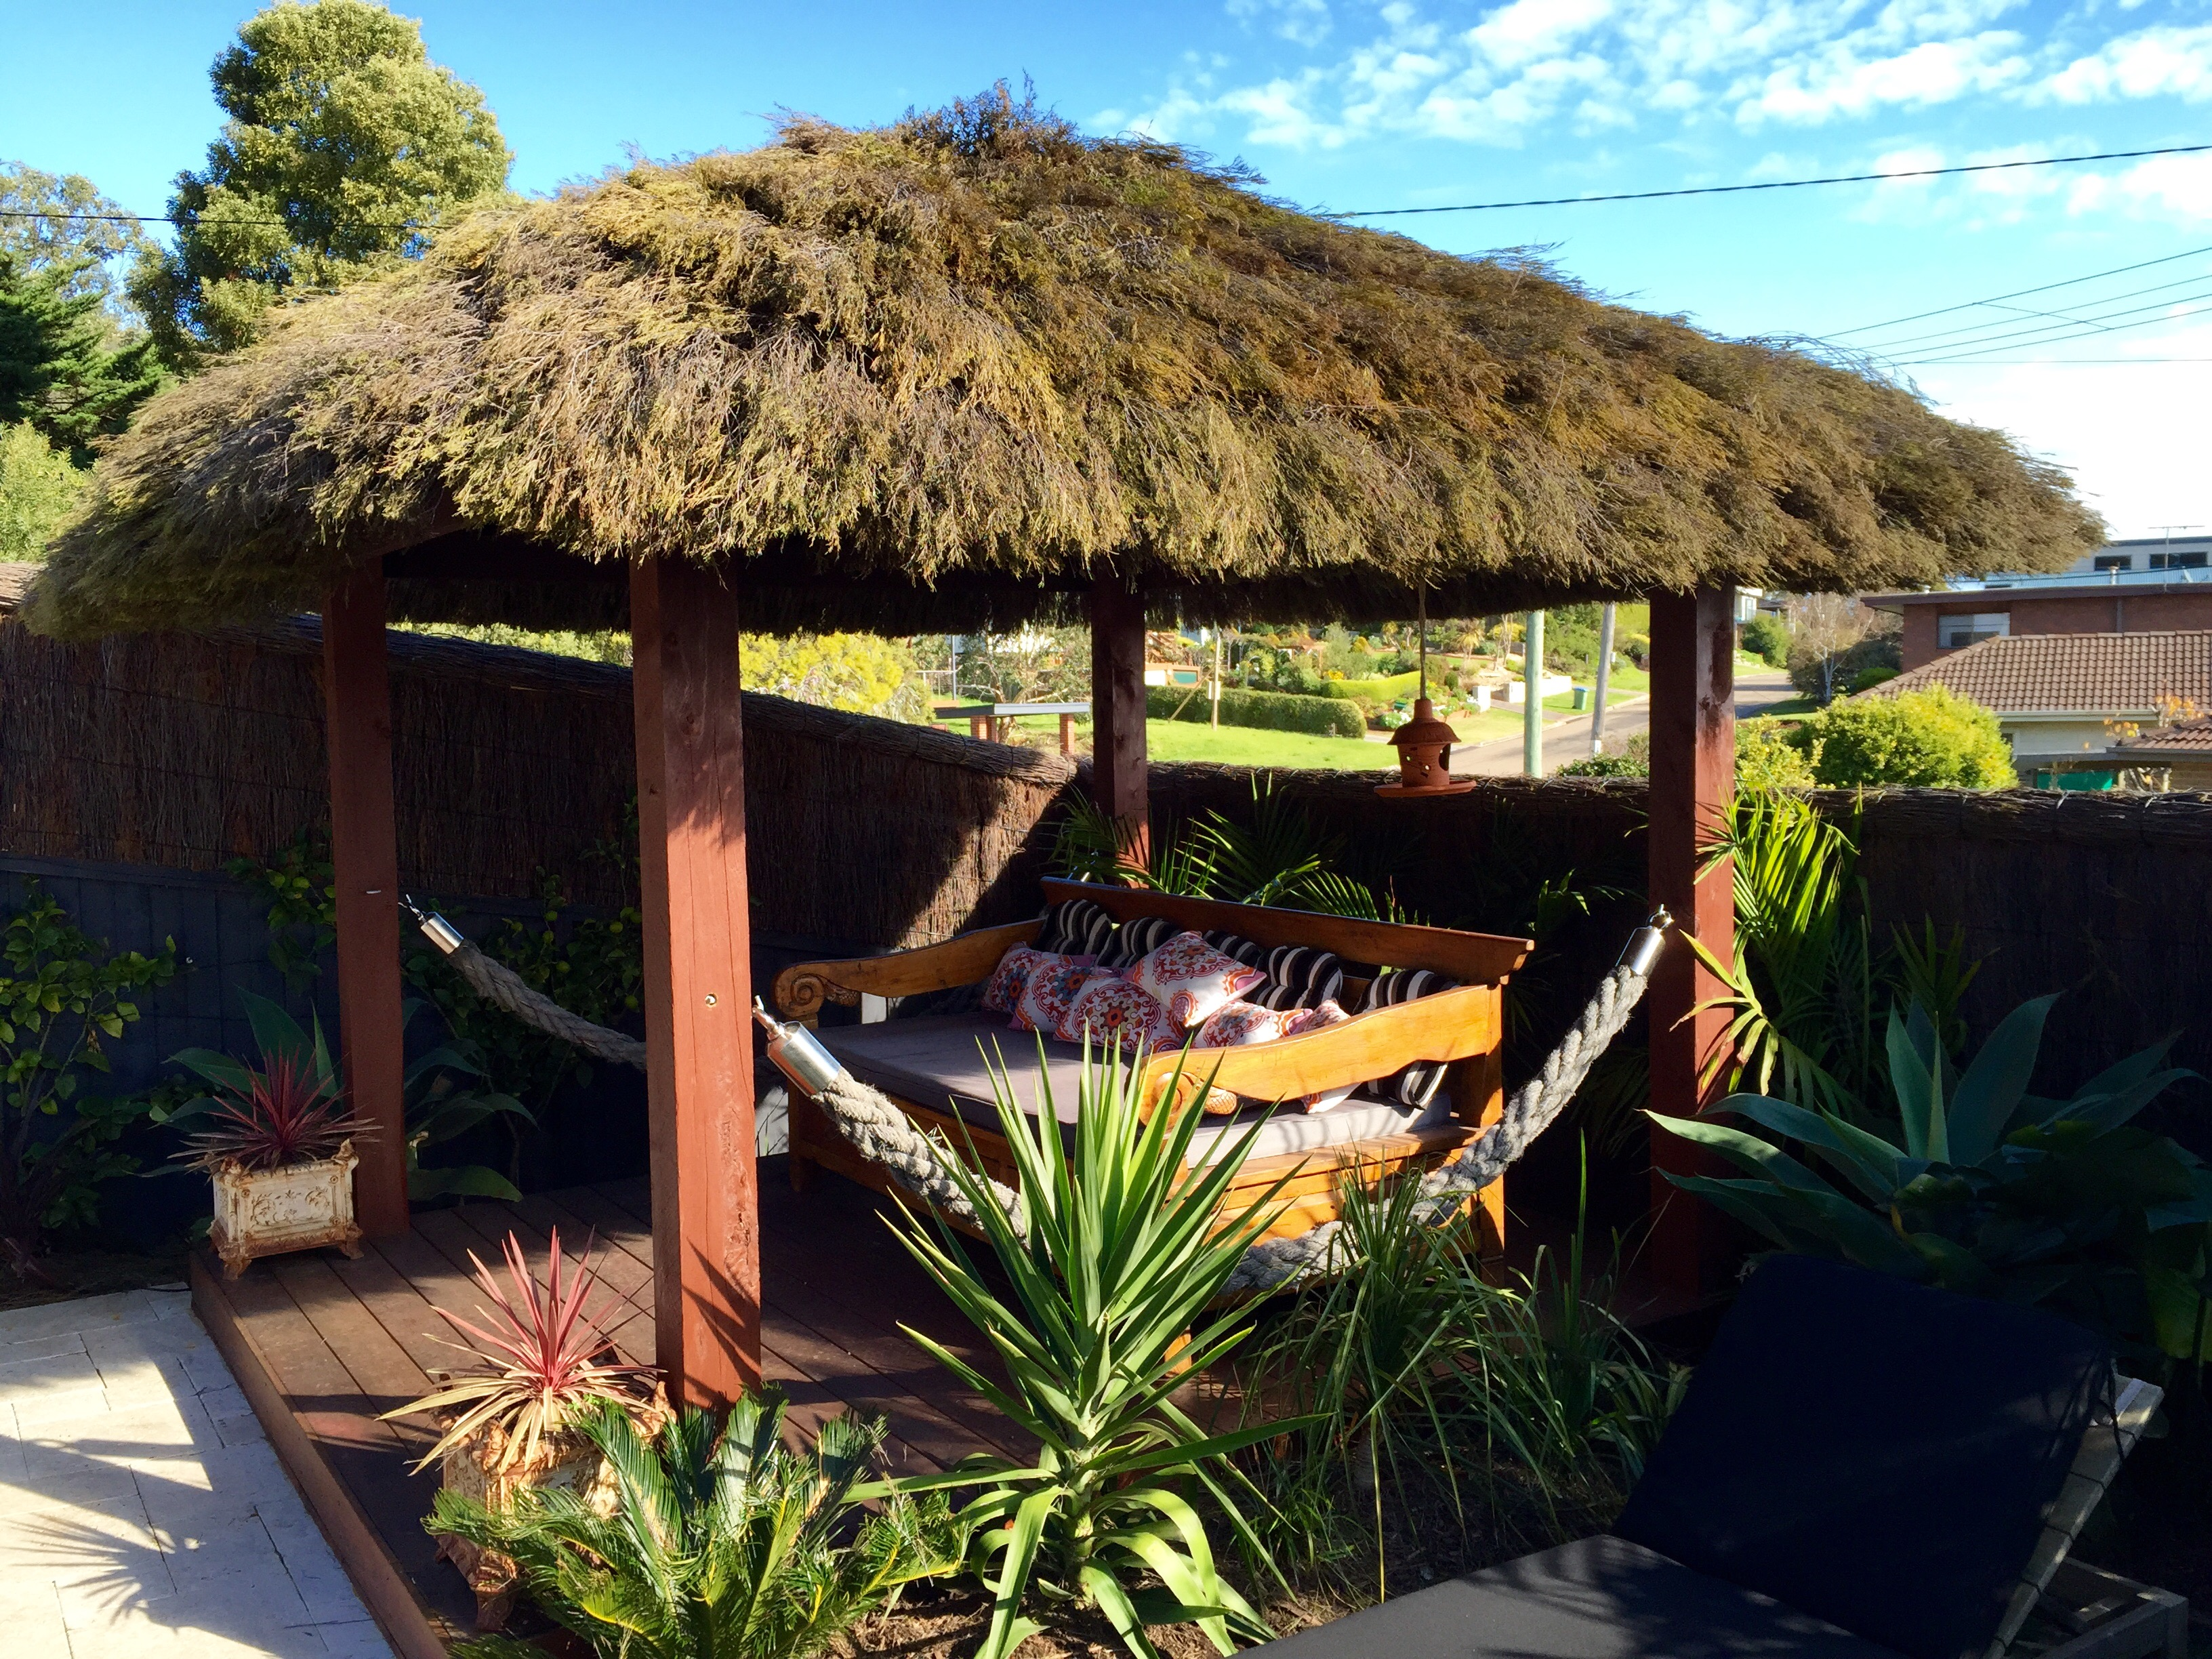 Roof Thatching Wilkins Brush Fencing